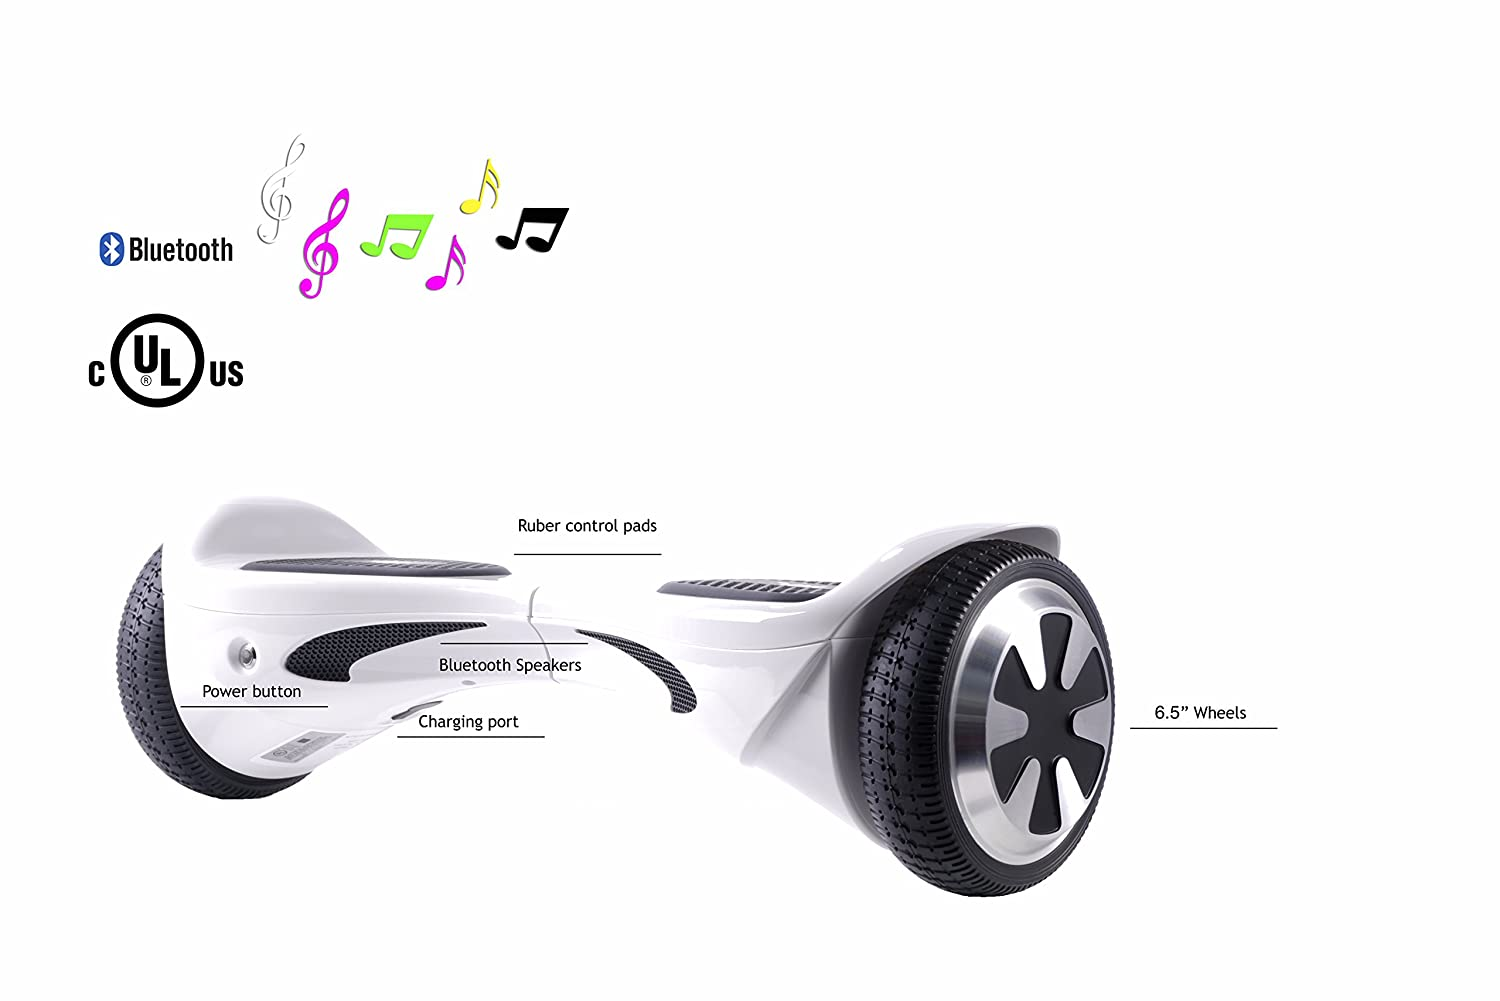 SAVA X1L- UL Certified 2272 Self BalancingScooter Hoverboard with Bluetooth Speaker LED Lights Free Carry Case Firesafe Battery